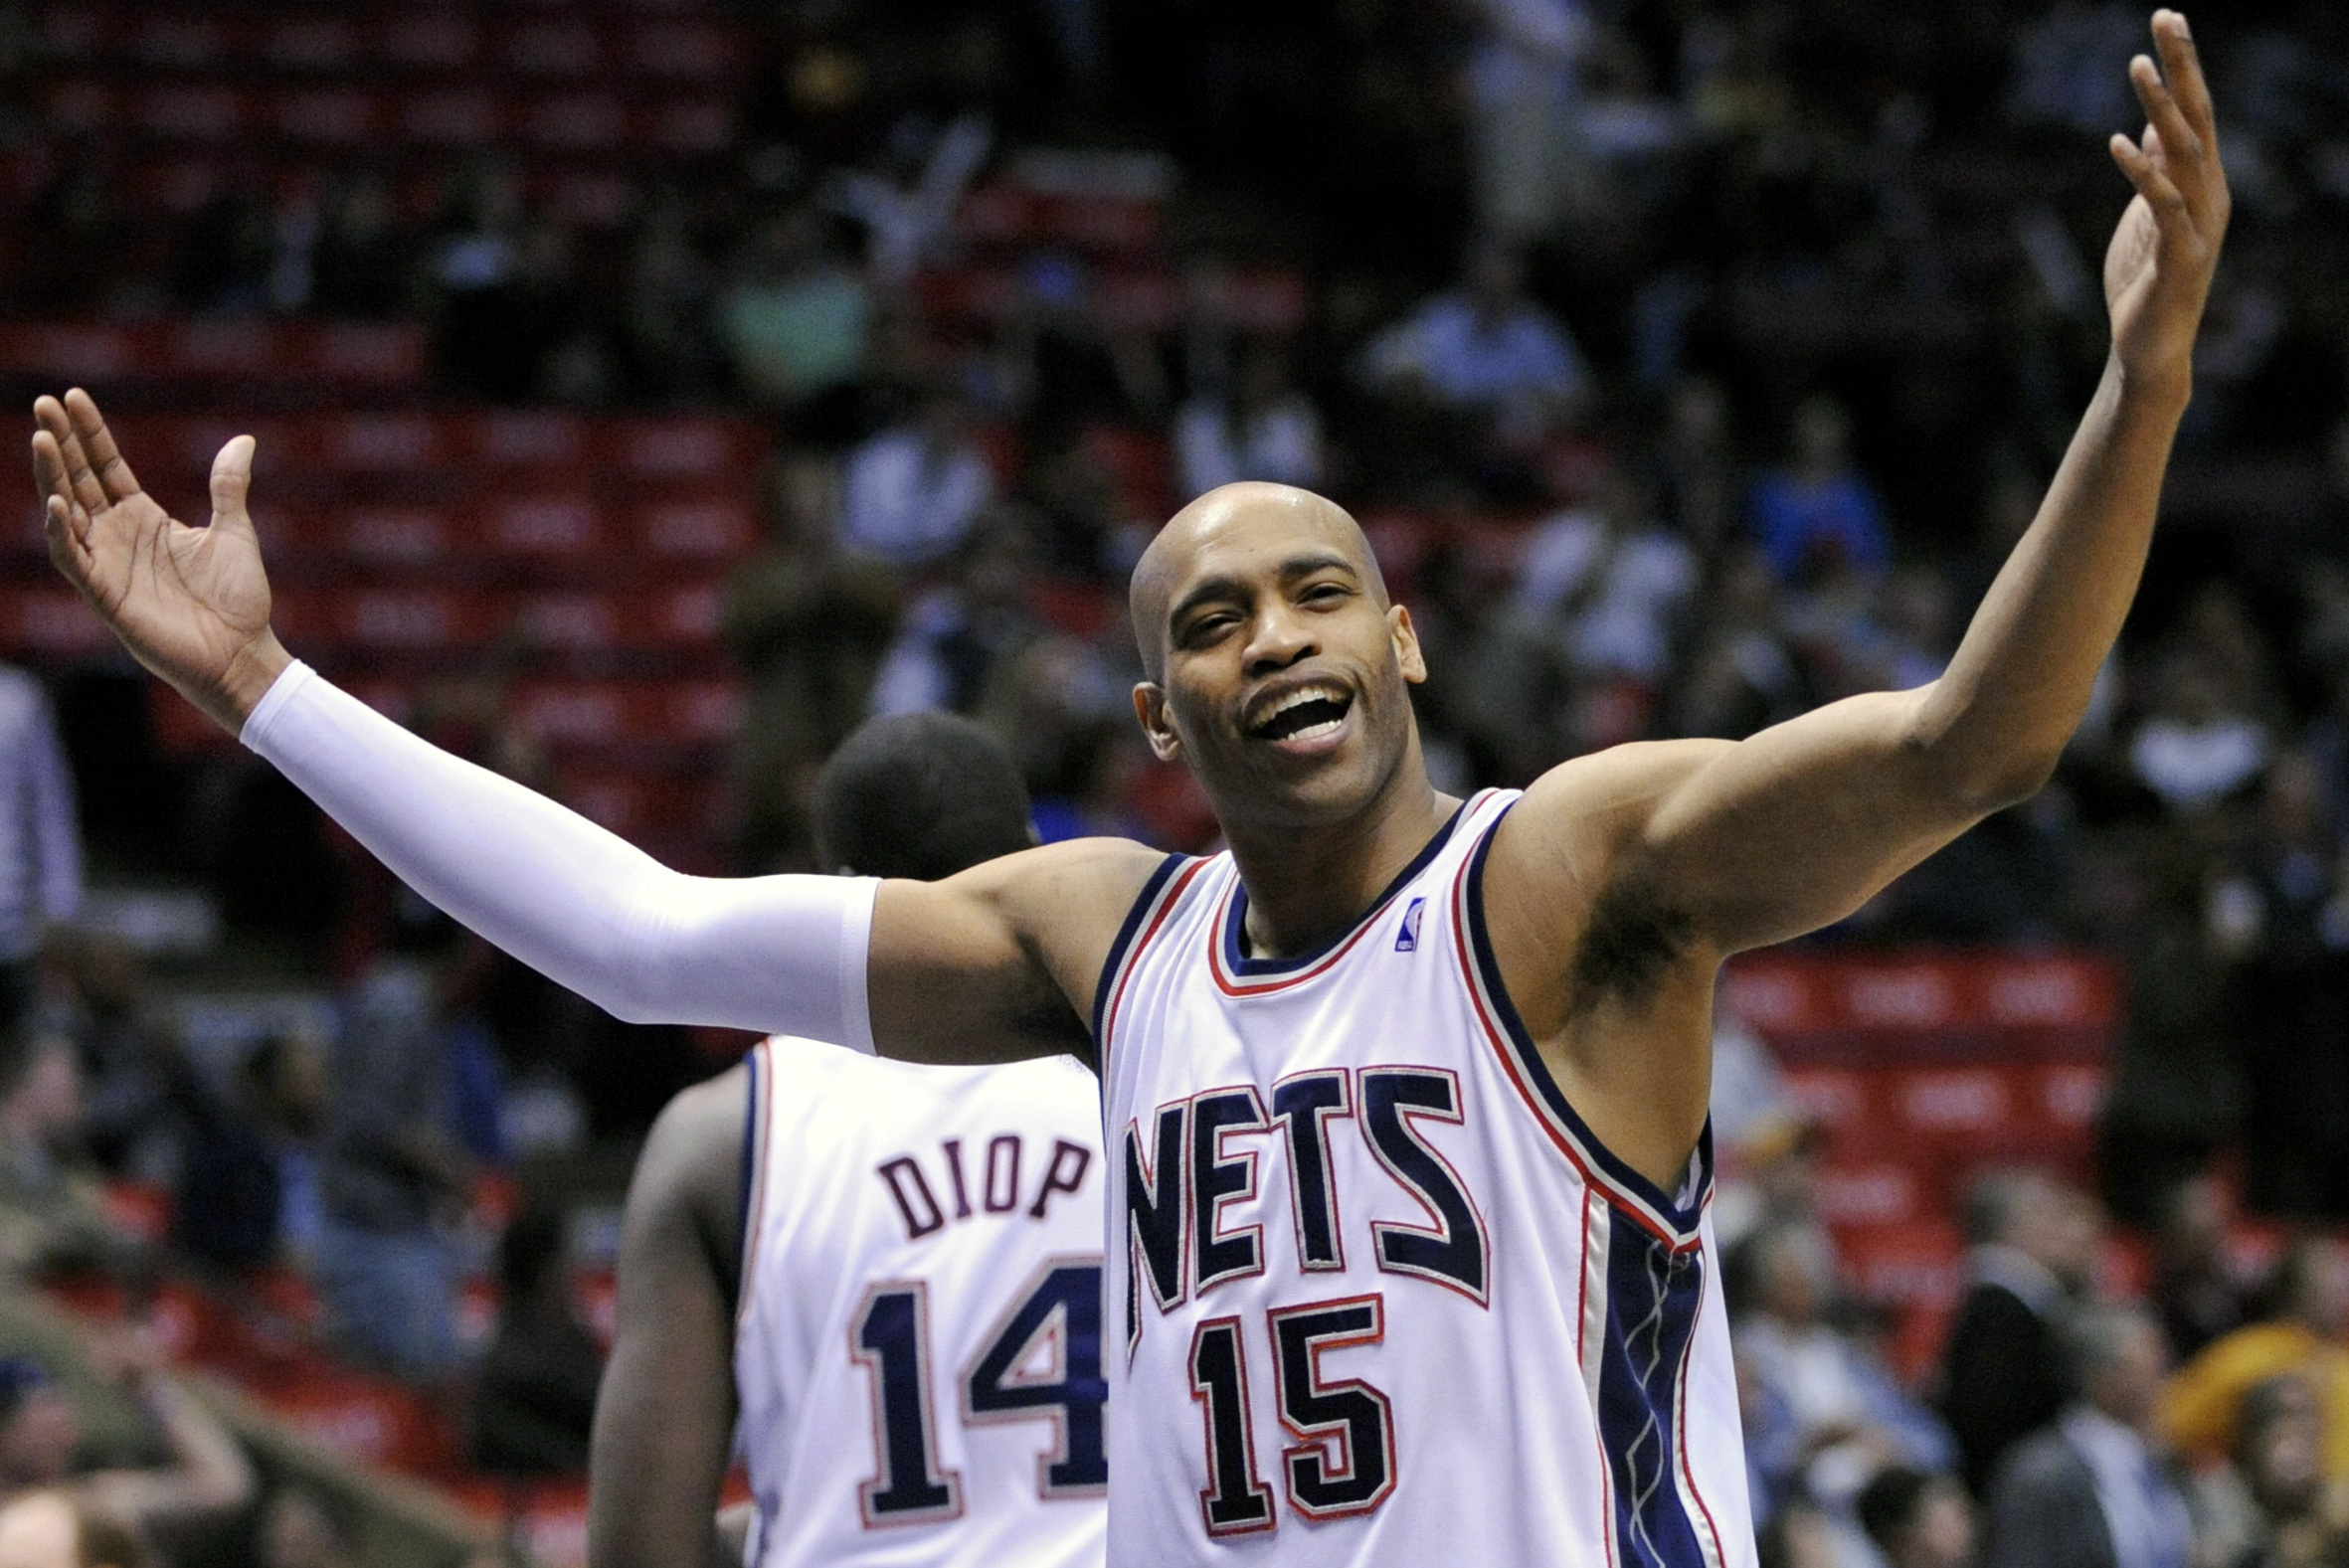 huge selection of 7c3c4 fdd40 Vince Carter Says It Would Be 'A Dream Come True' If Nets ...